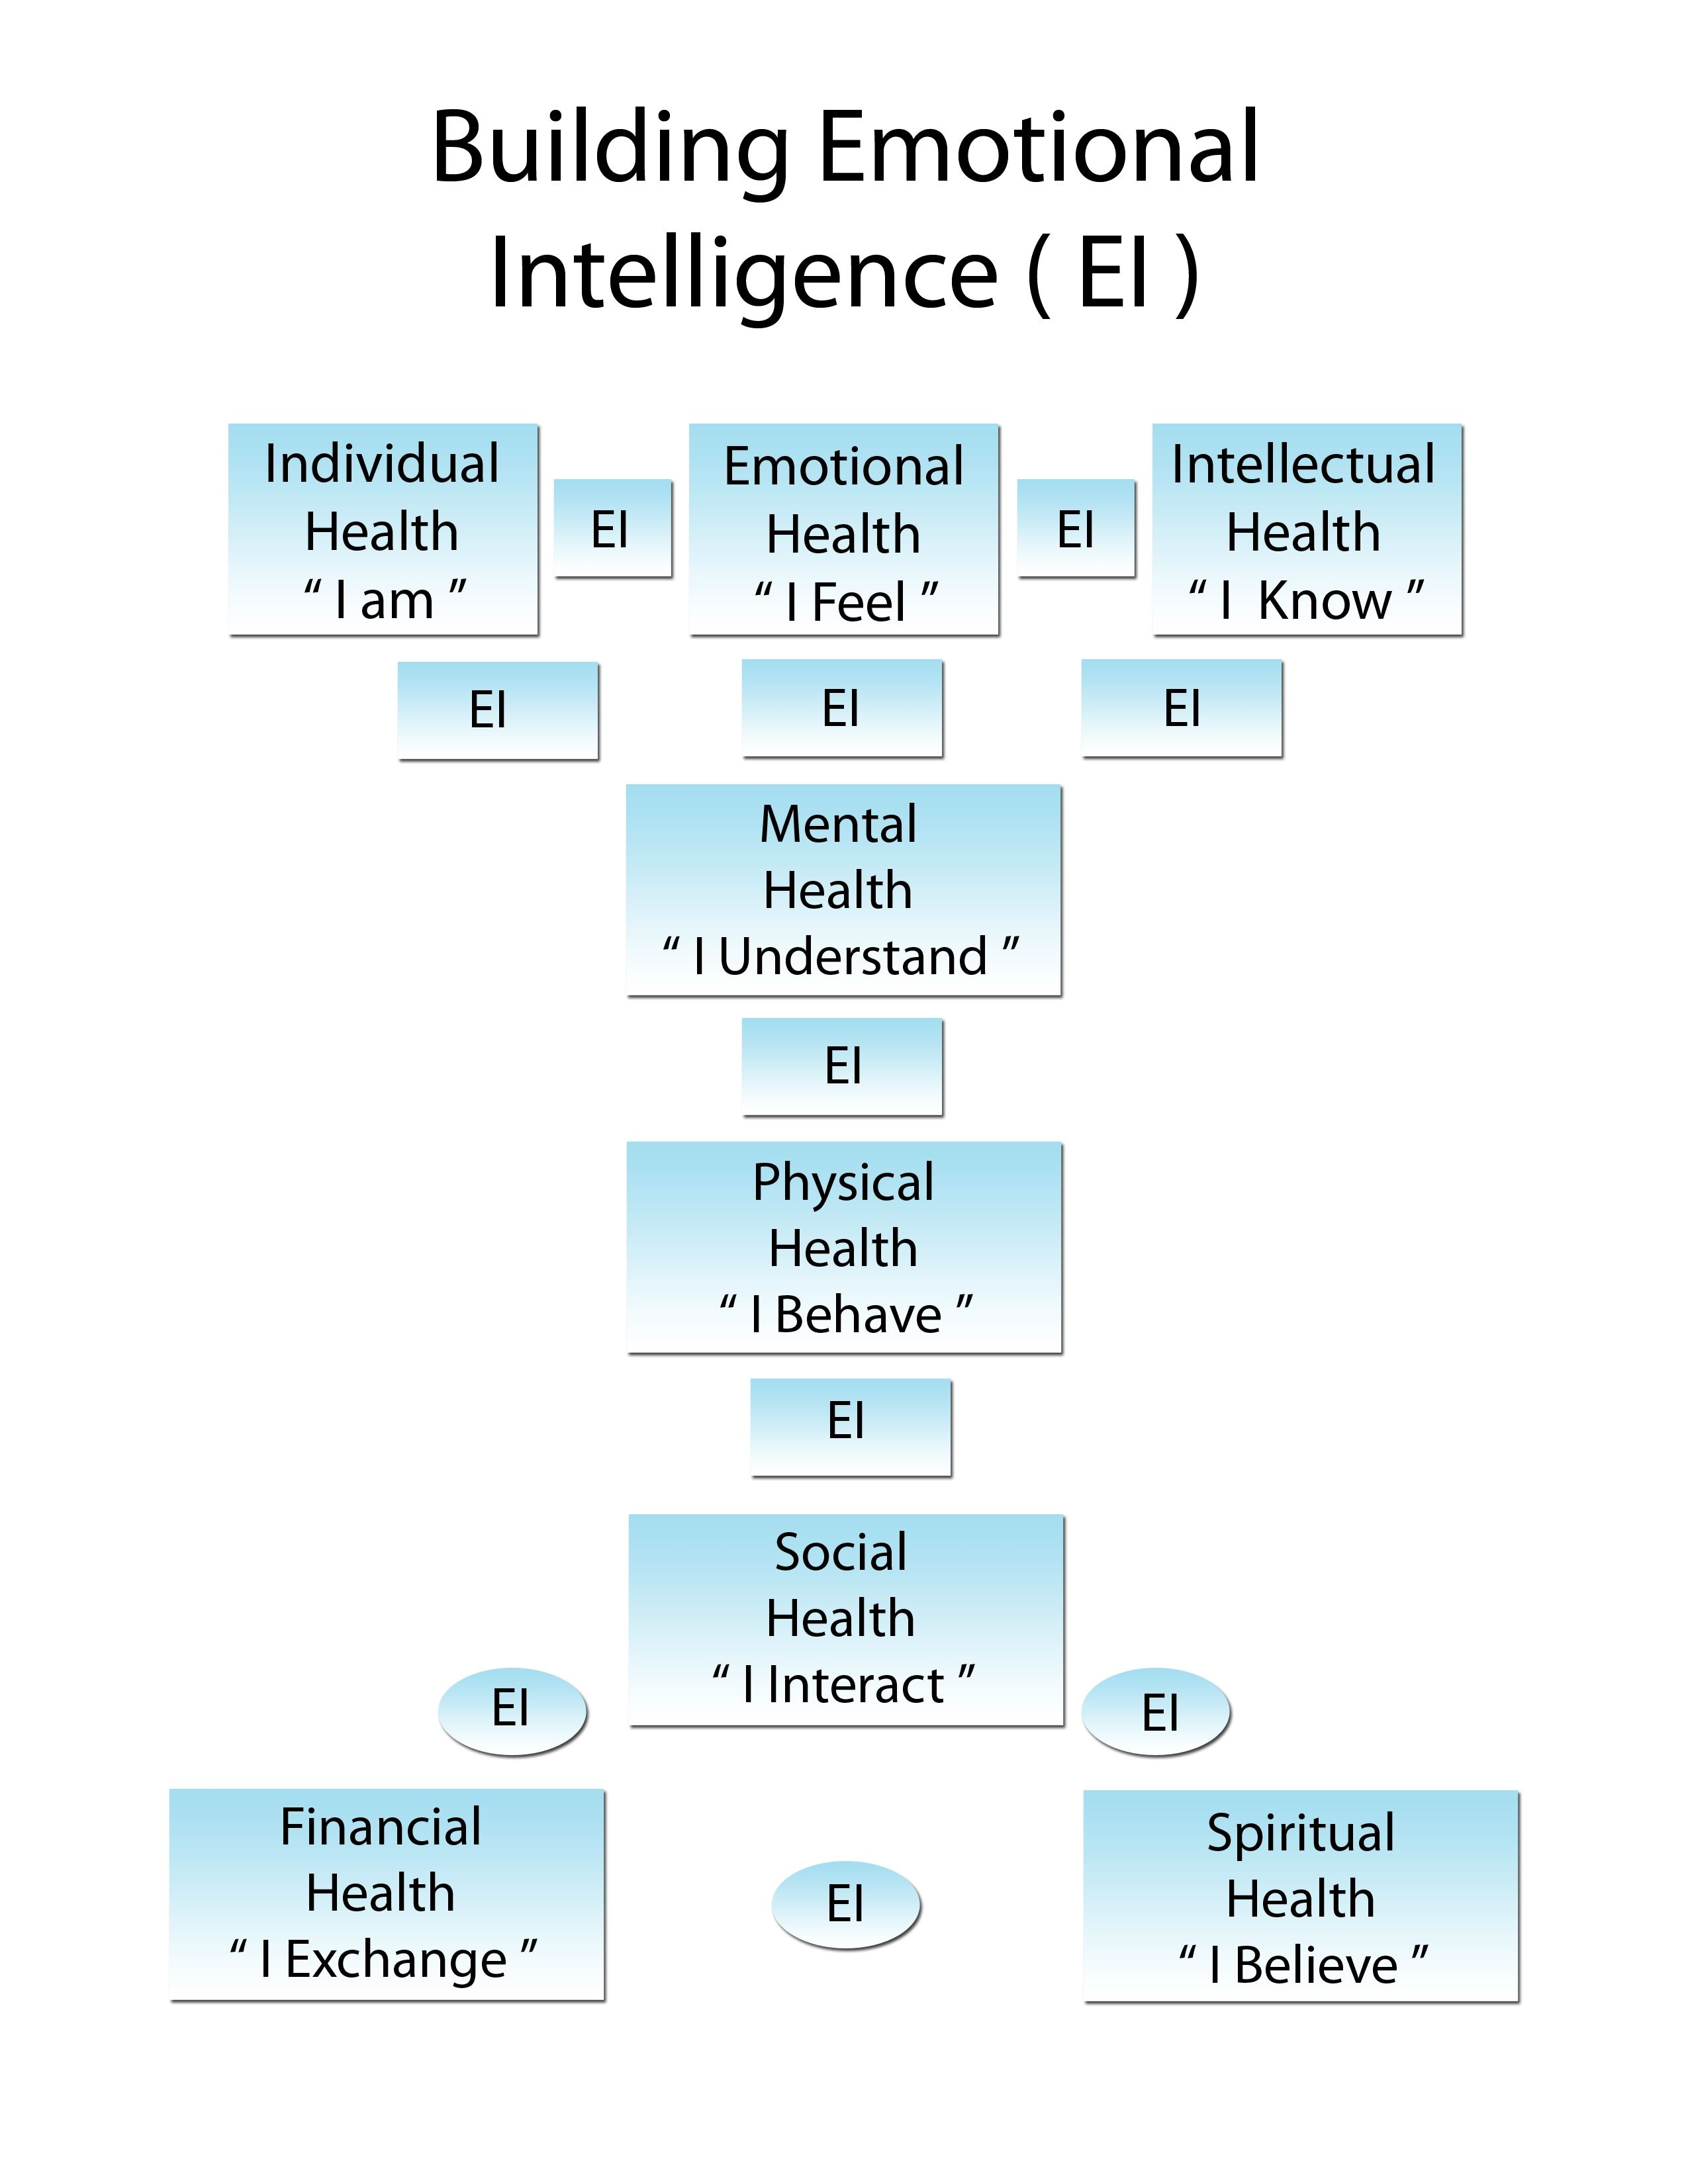 Drw emotional intelligence model drw life skills institute drw emotional intelligence model xflitez Choice Image